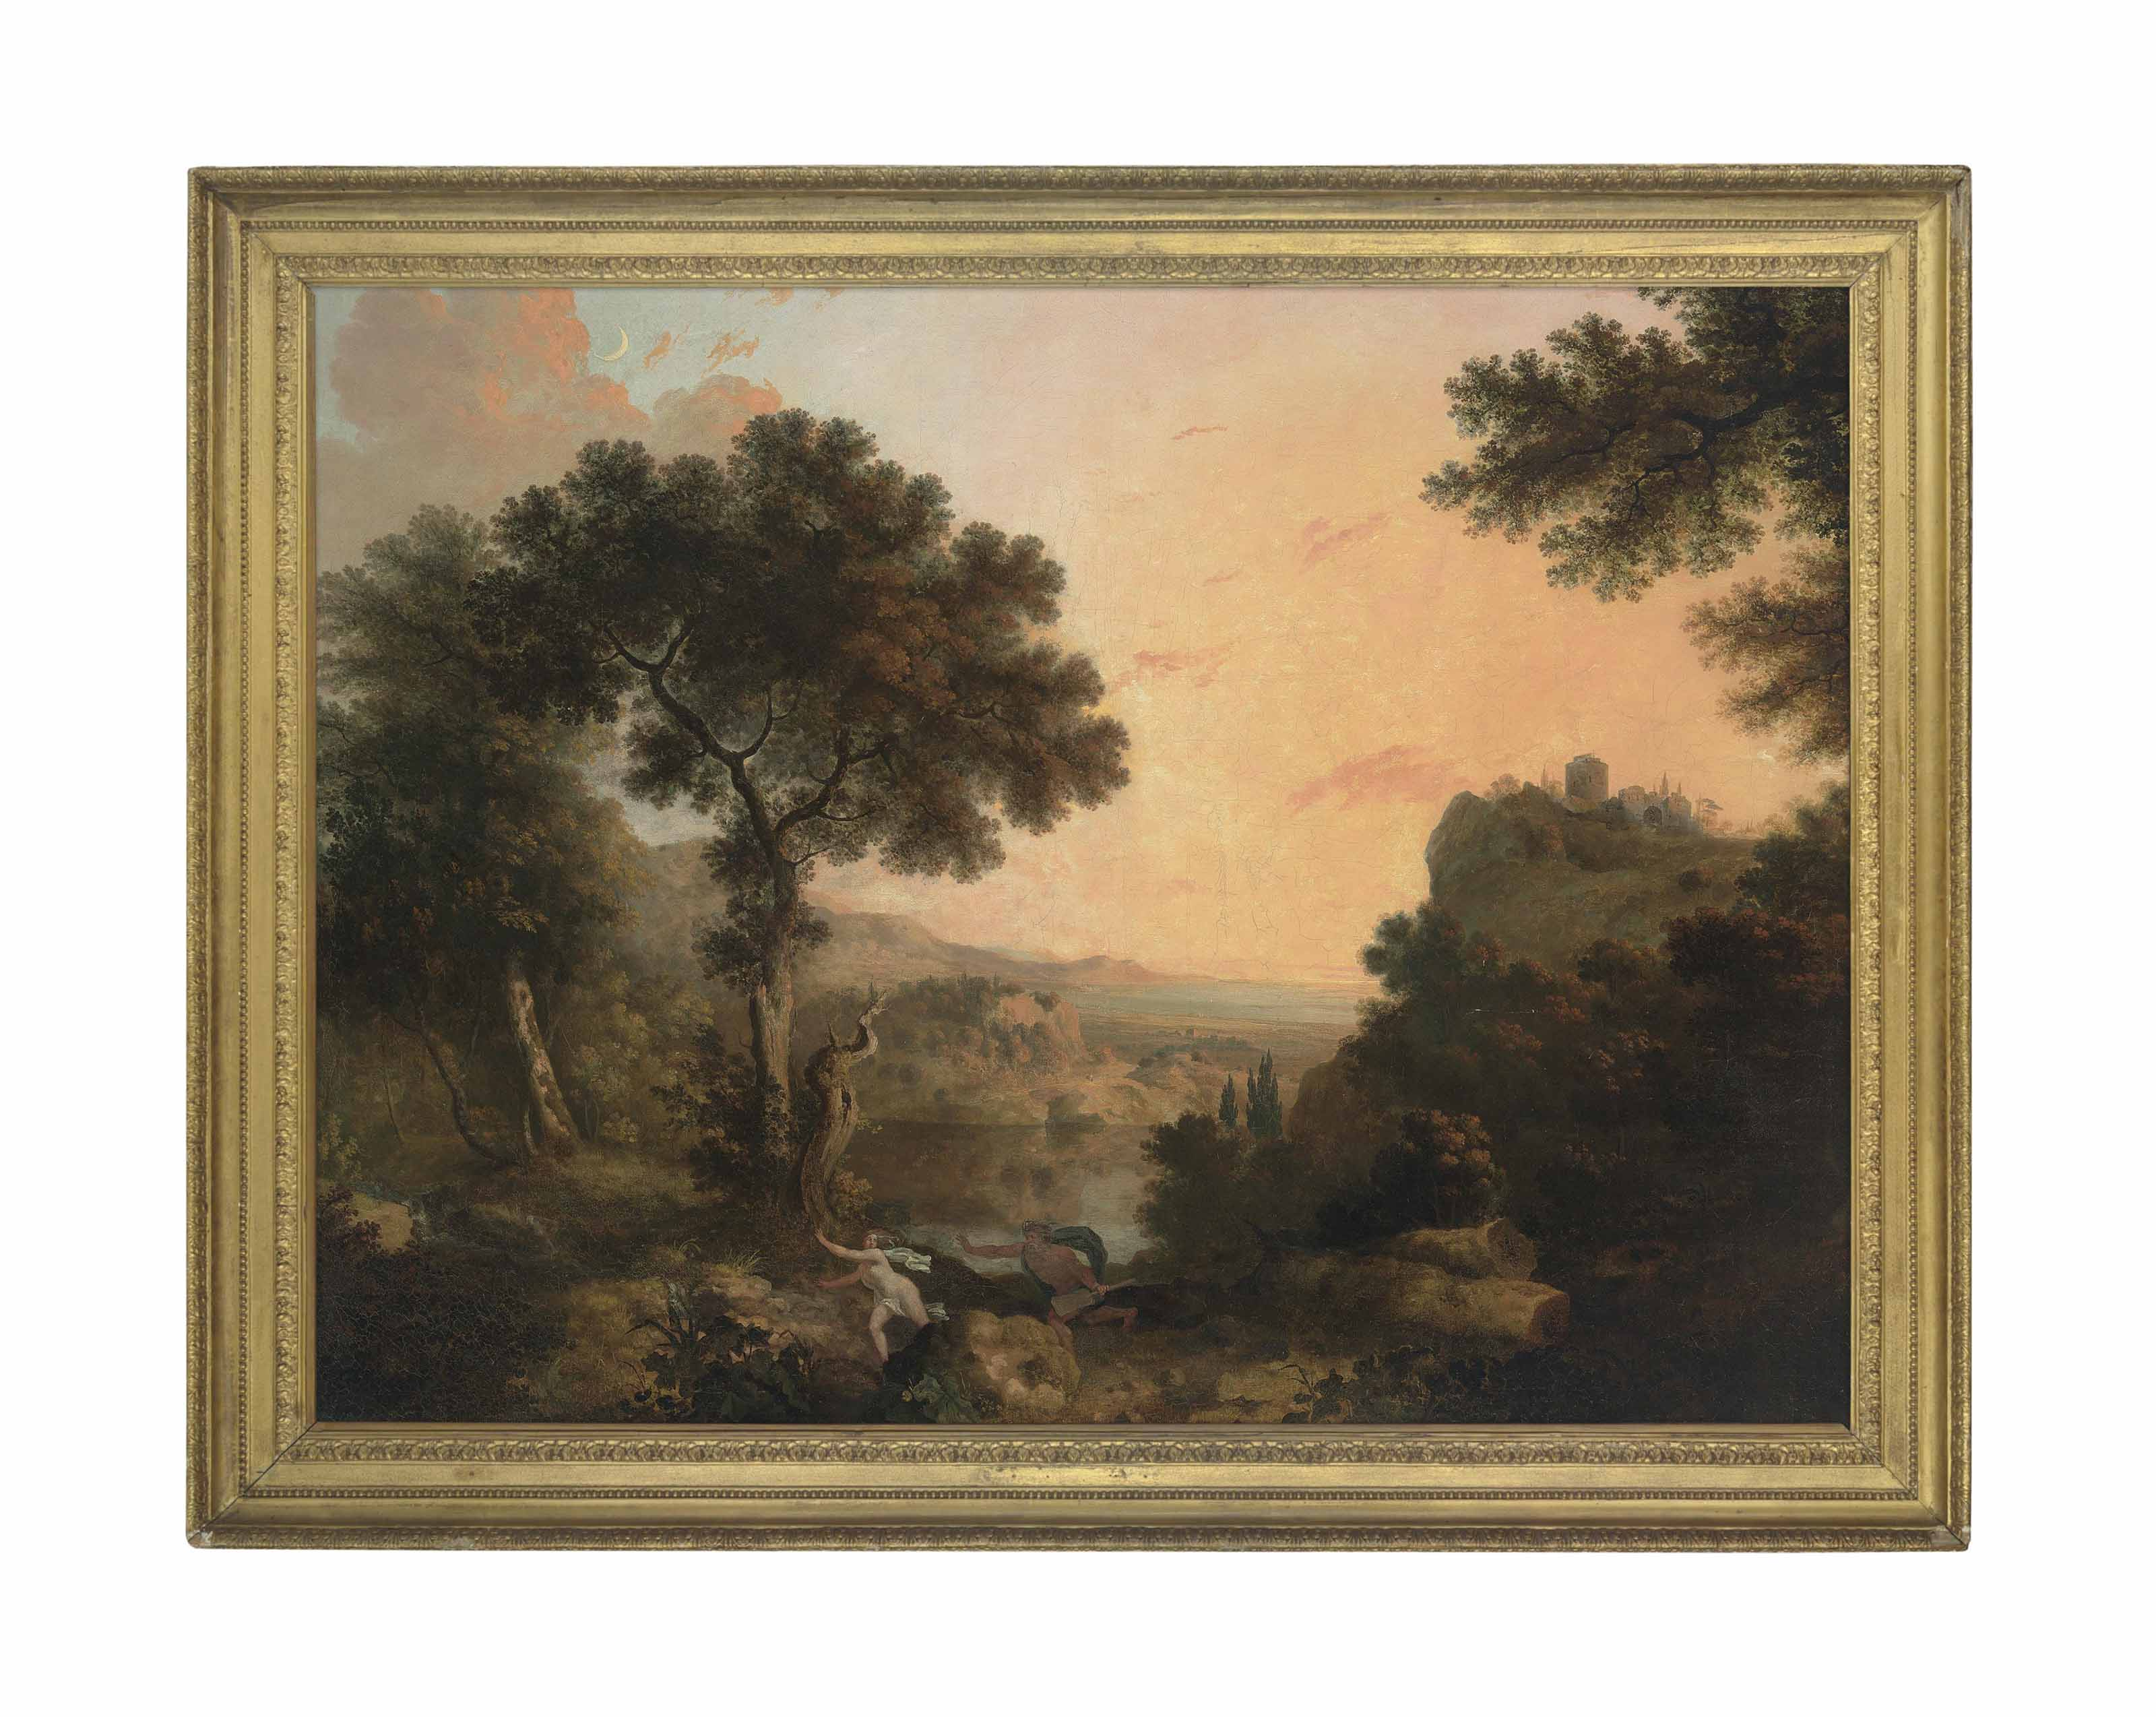 A wooded river landscape at dusk with Alpheus and Arethusa in the foreground